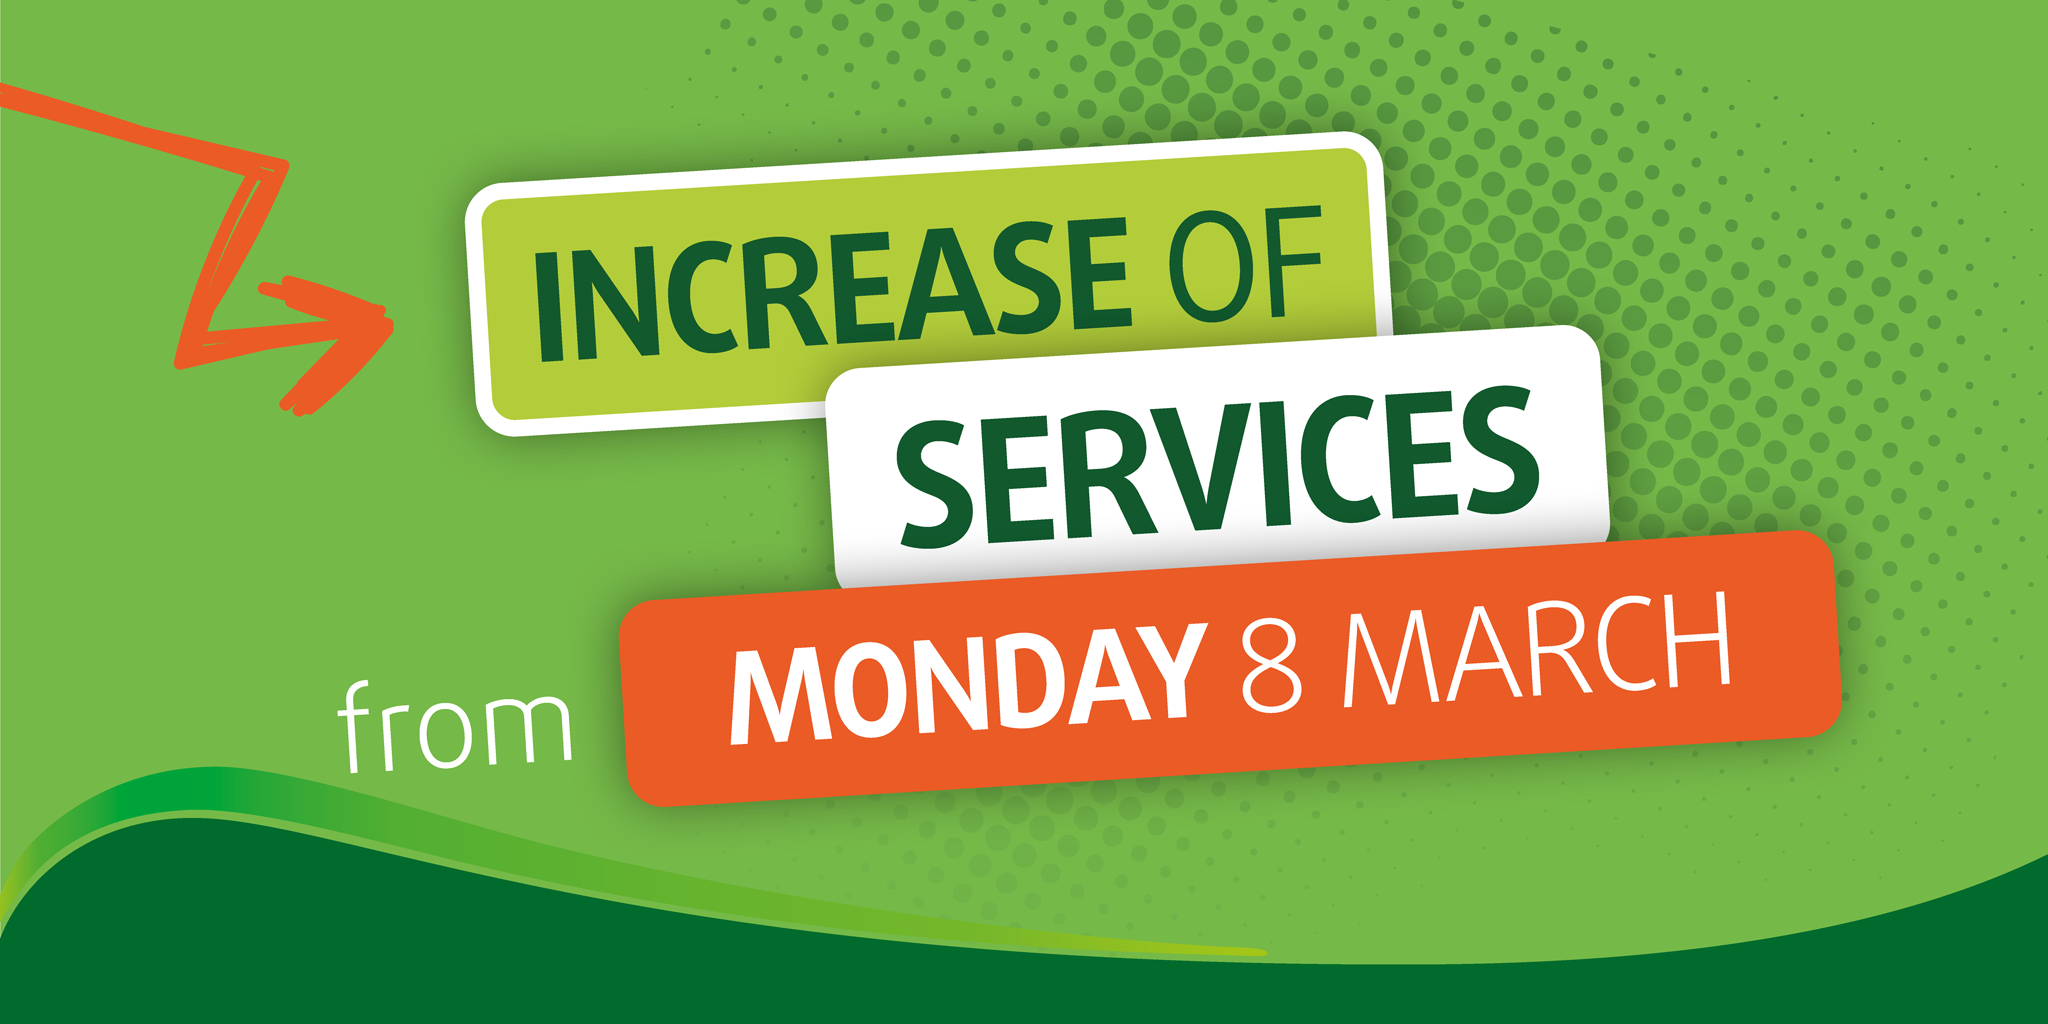 Increase of services from Monday 8th March